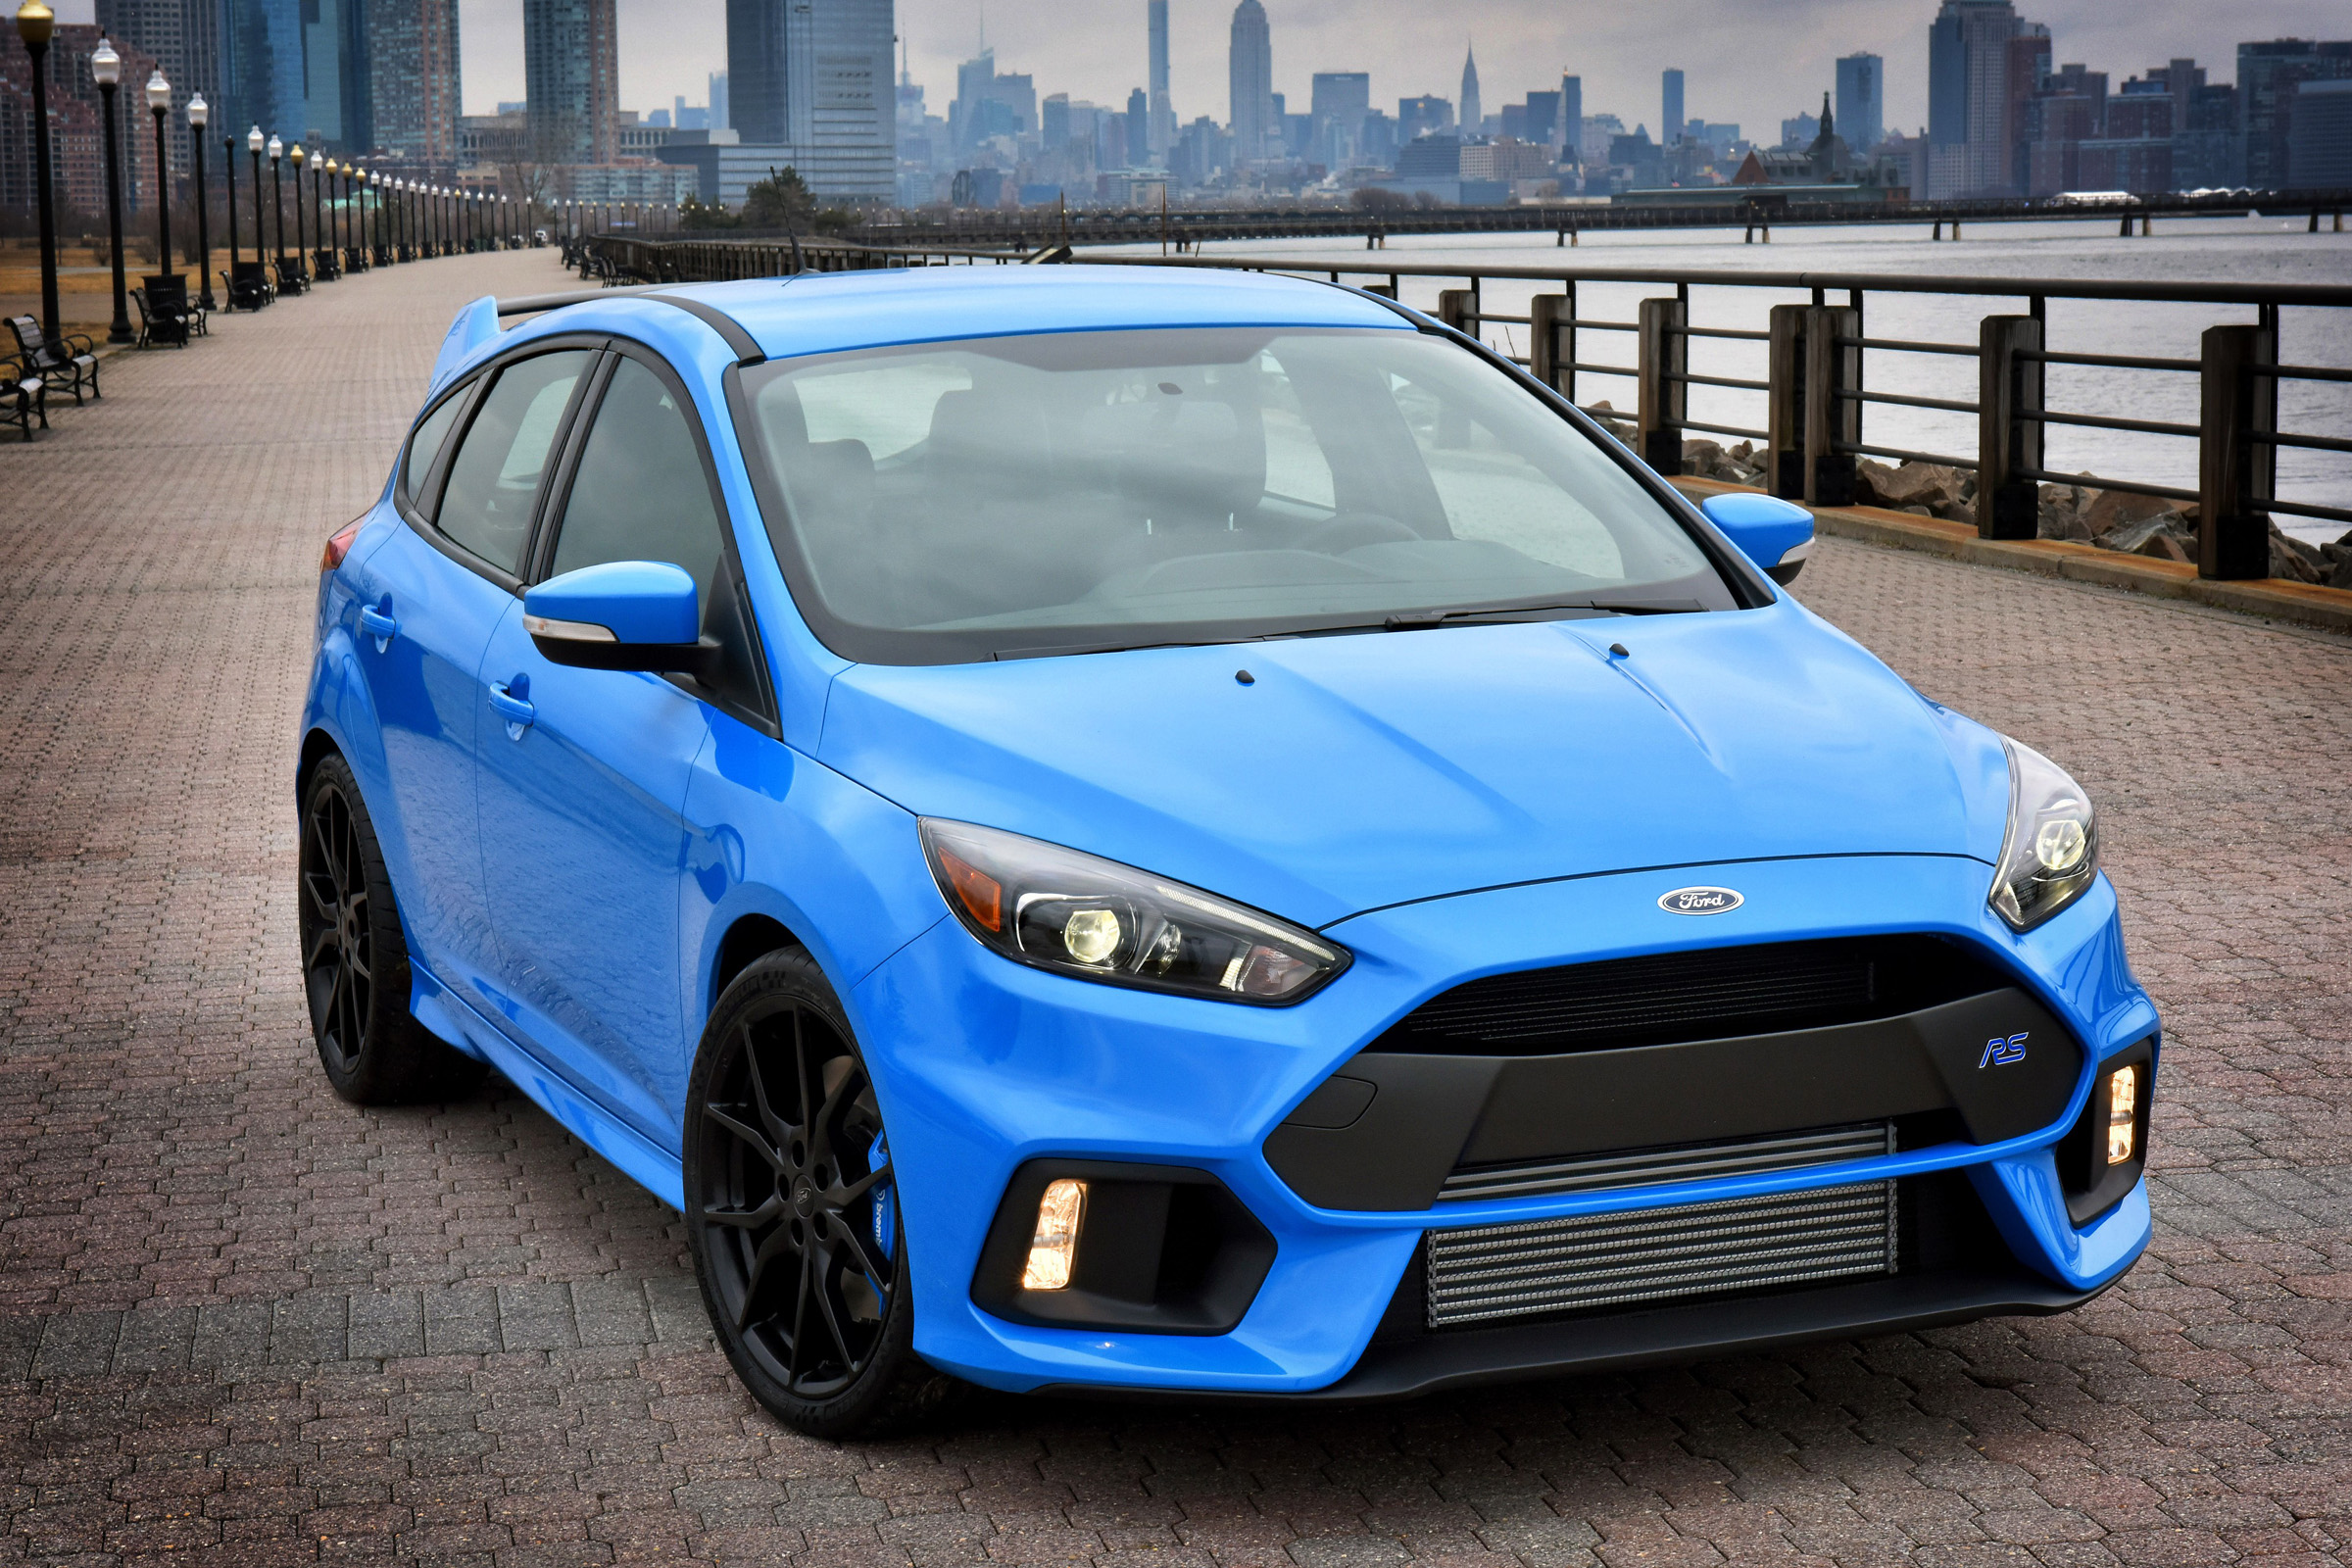 New Ford Focus Rs Full Details On 345bhp 4x4 Mega Hatch Auto Express